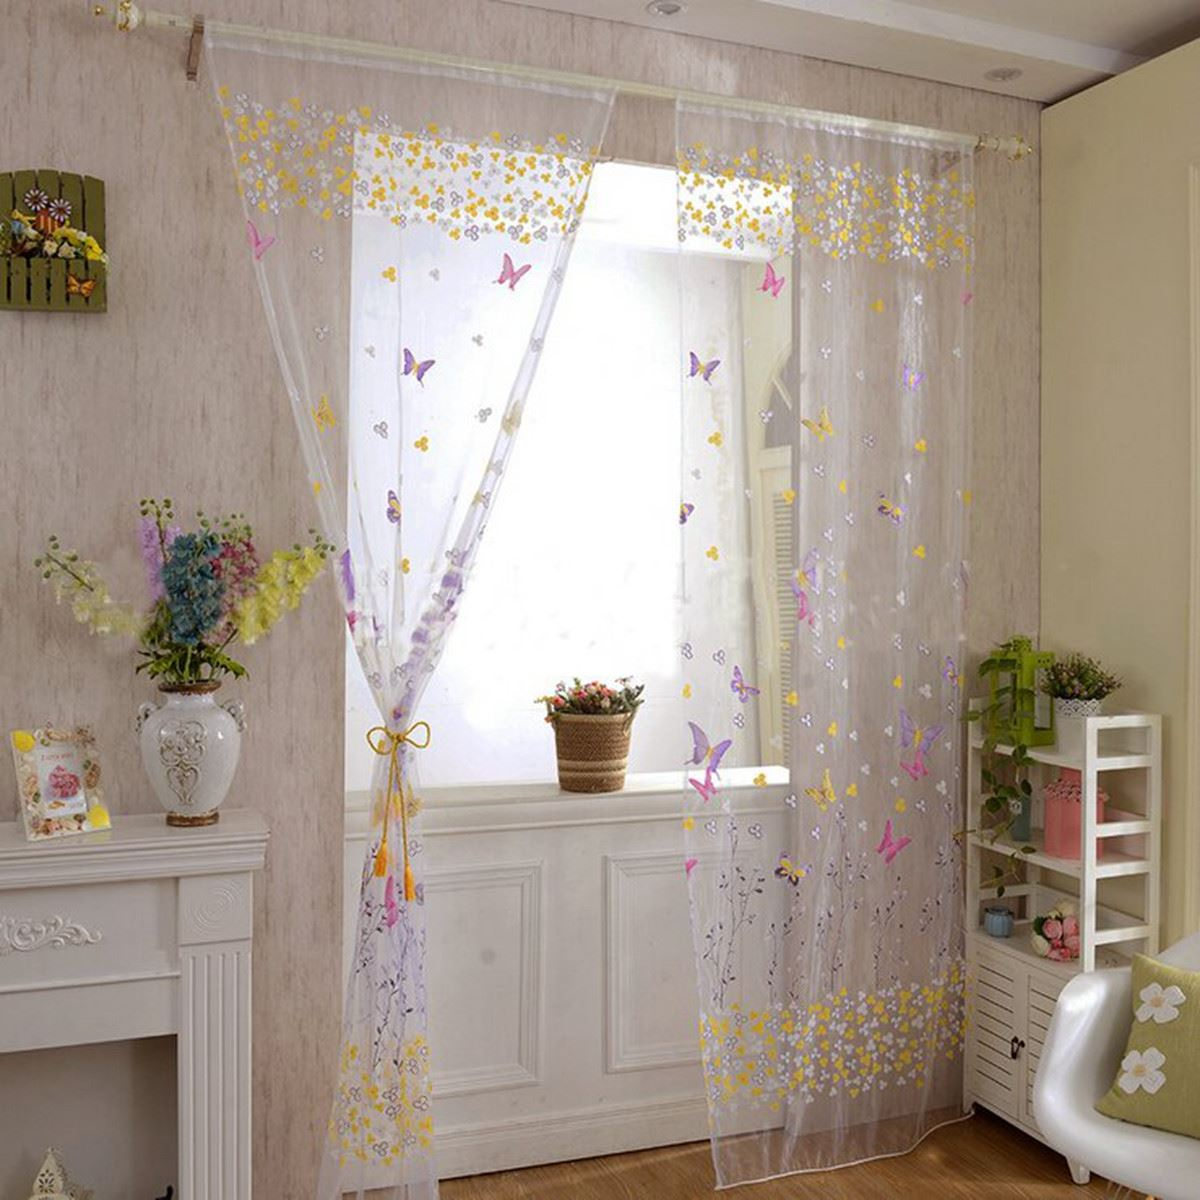 Pastoral Print Tulle Door Transparent Window Curtain Voile Drape 2016 Panel  Sheer Scarf Valances Bedroom Living Room Decor